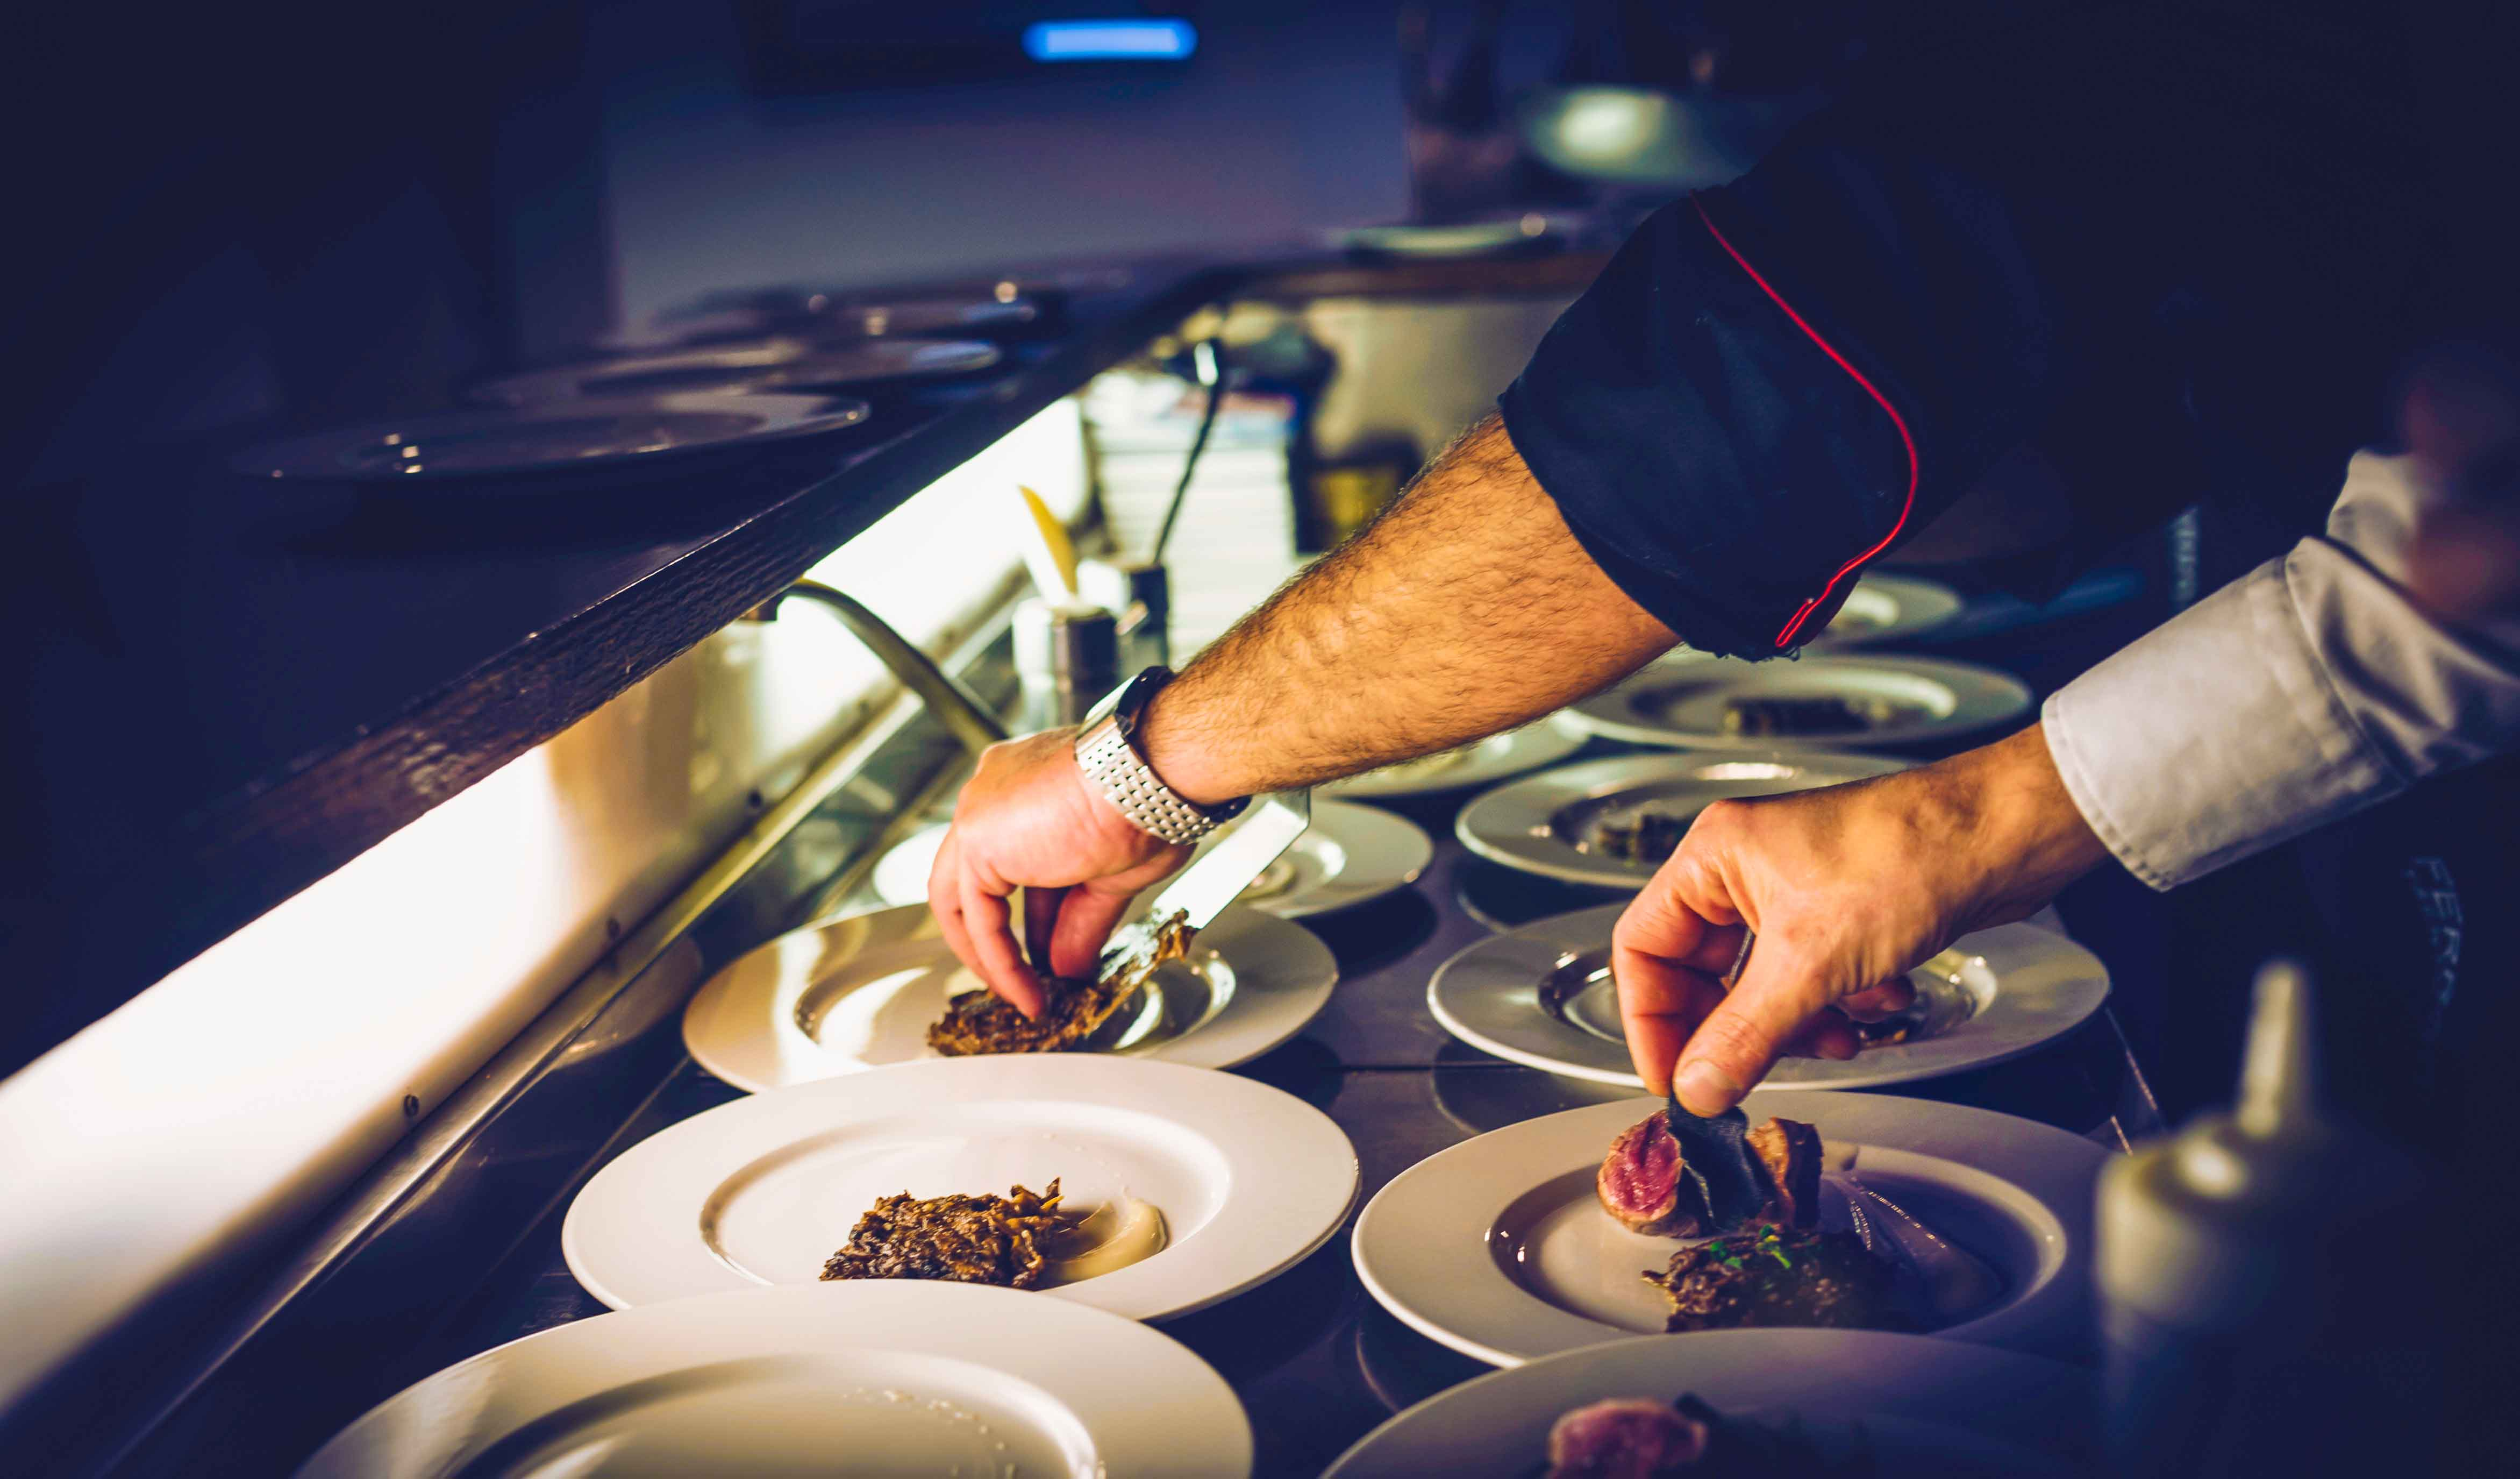 chef preparing dishes in a food and beverage service industry